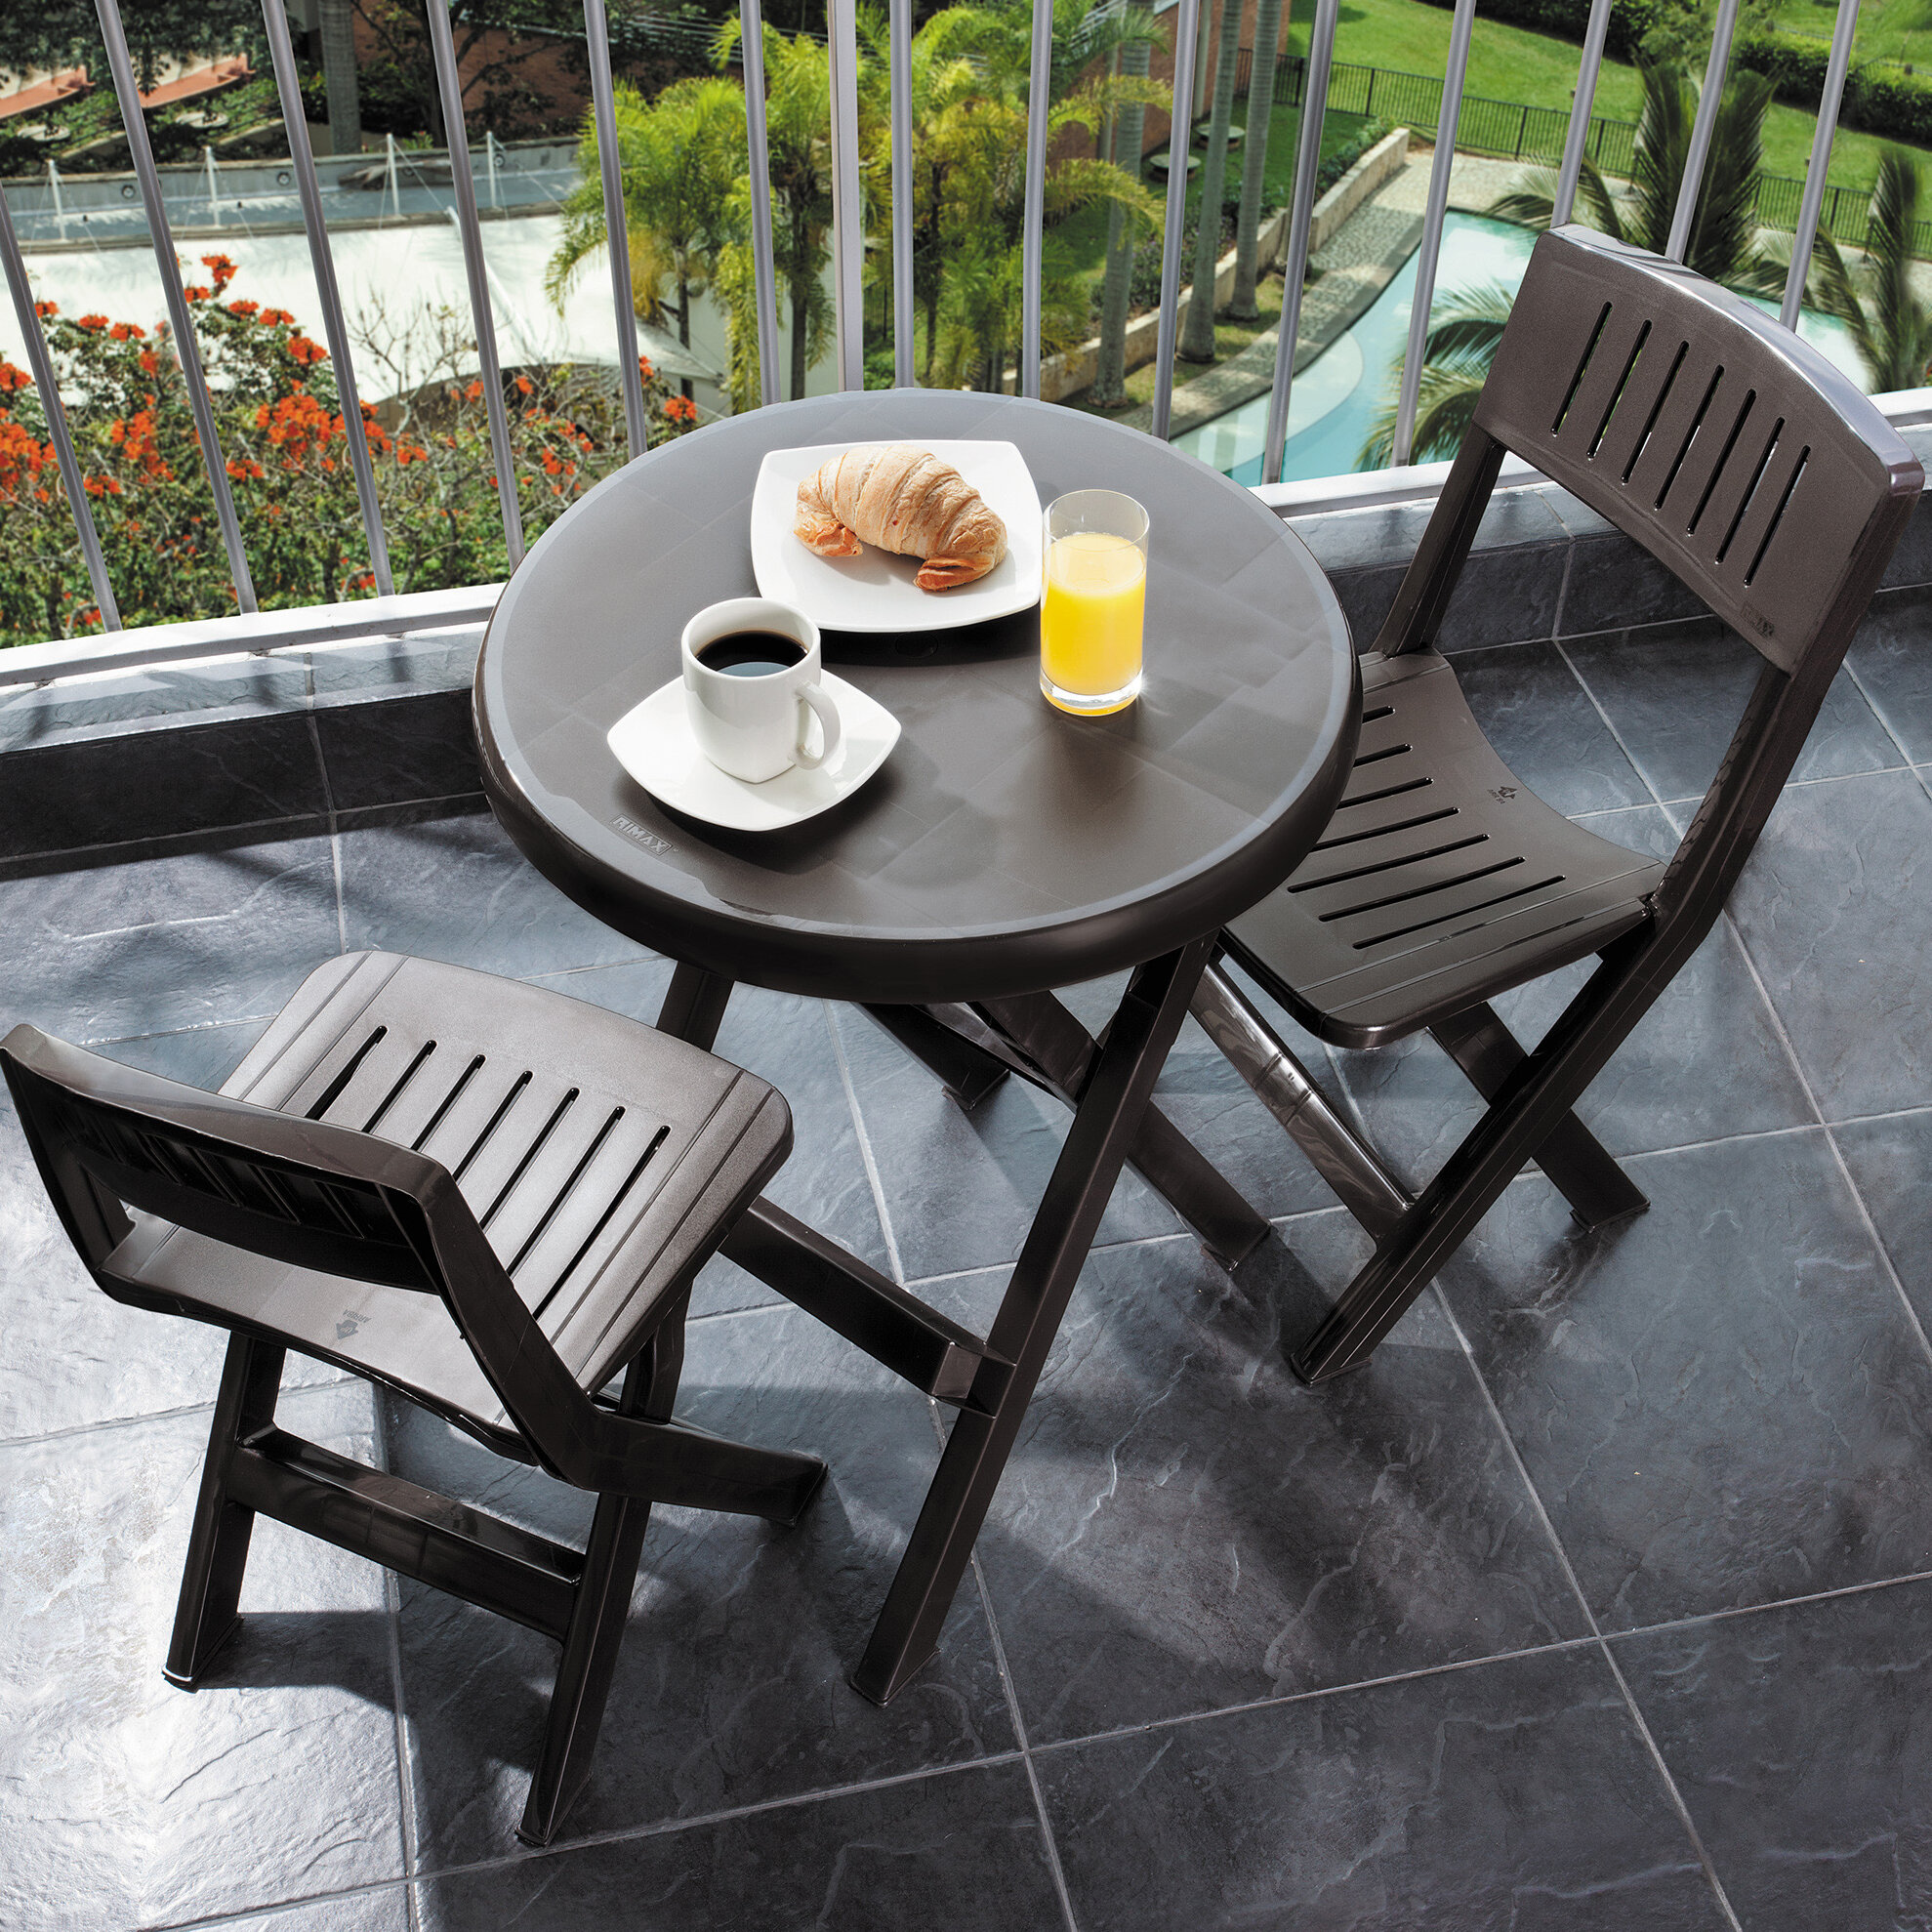 RIMAX Outdoor 3 Piece Bistro Set U0026 Reviews | Wayfair